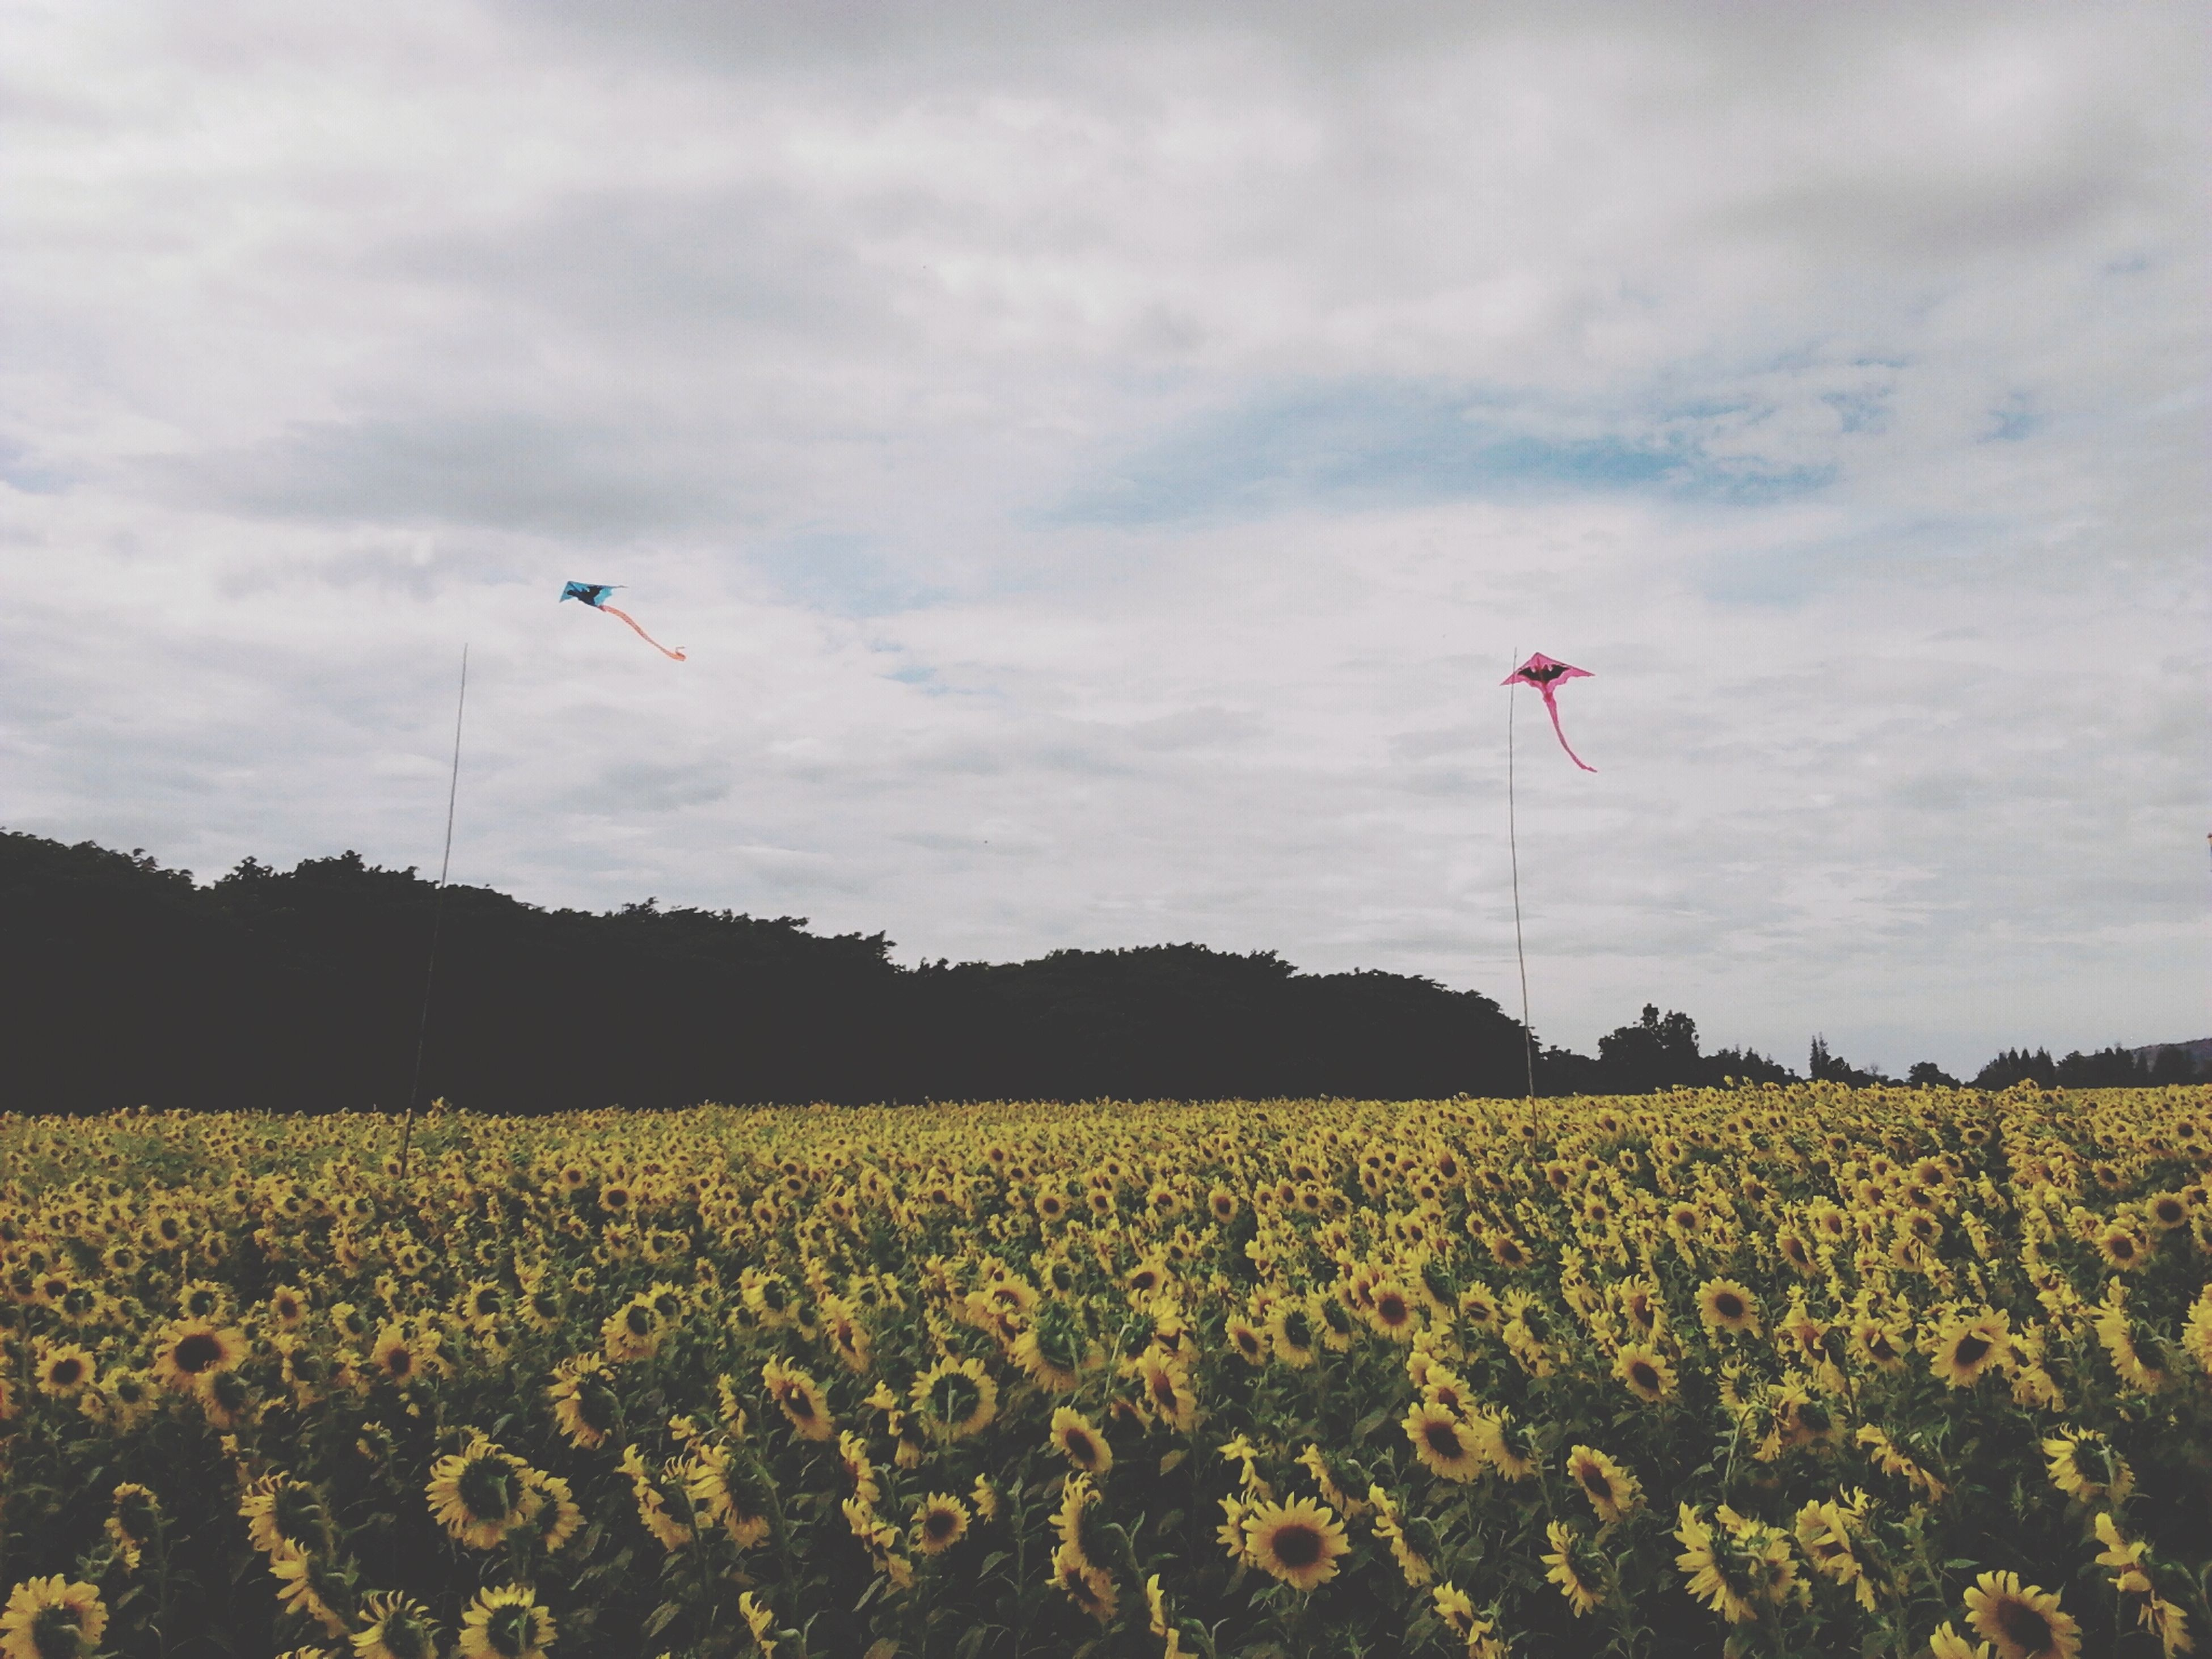 sky, field, landscape, cloud - sky, flying, flower, flag, nature, tranquility, beauty in nature, tranquil scene, rural scene, scenics, growth, cloud, mid-air, agriculture, wind, patriotism, day